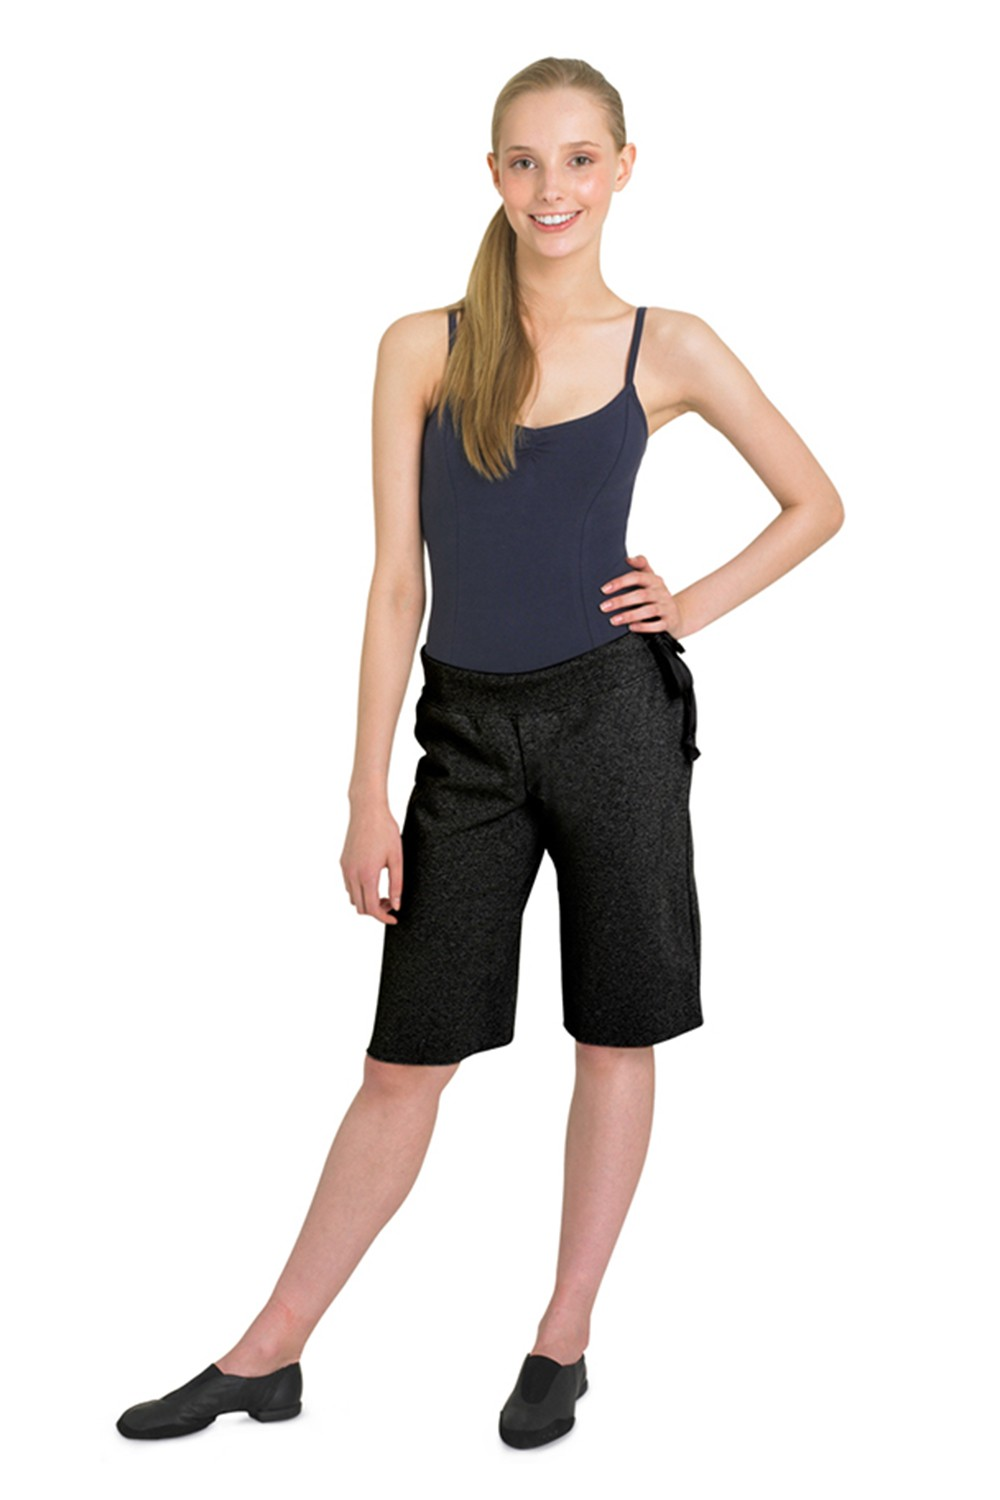 Women's Dance Shorts